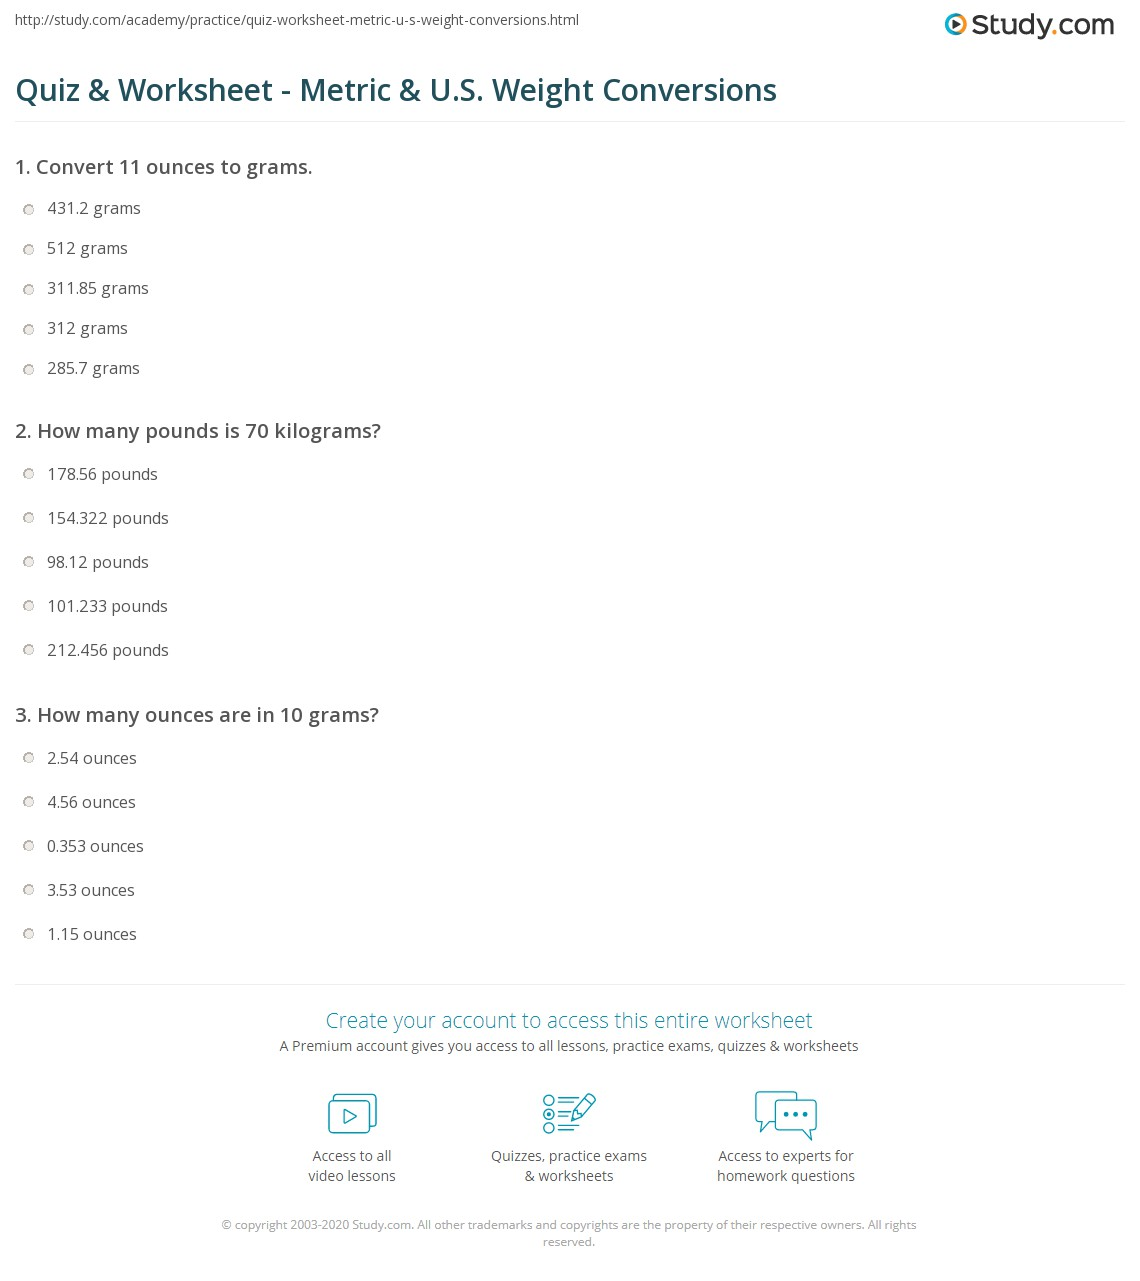 Quiz Worksheet Metric Us Weight Conversions Study